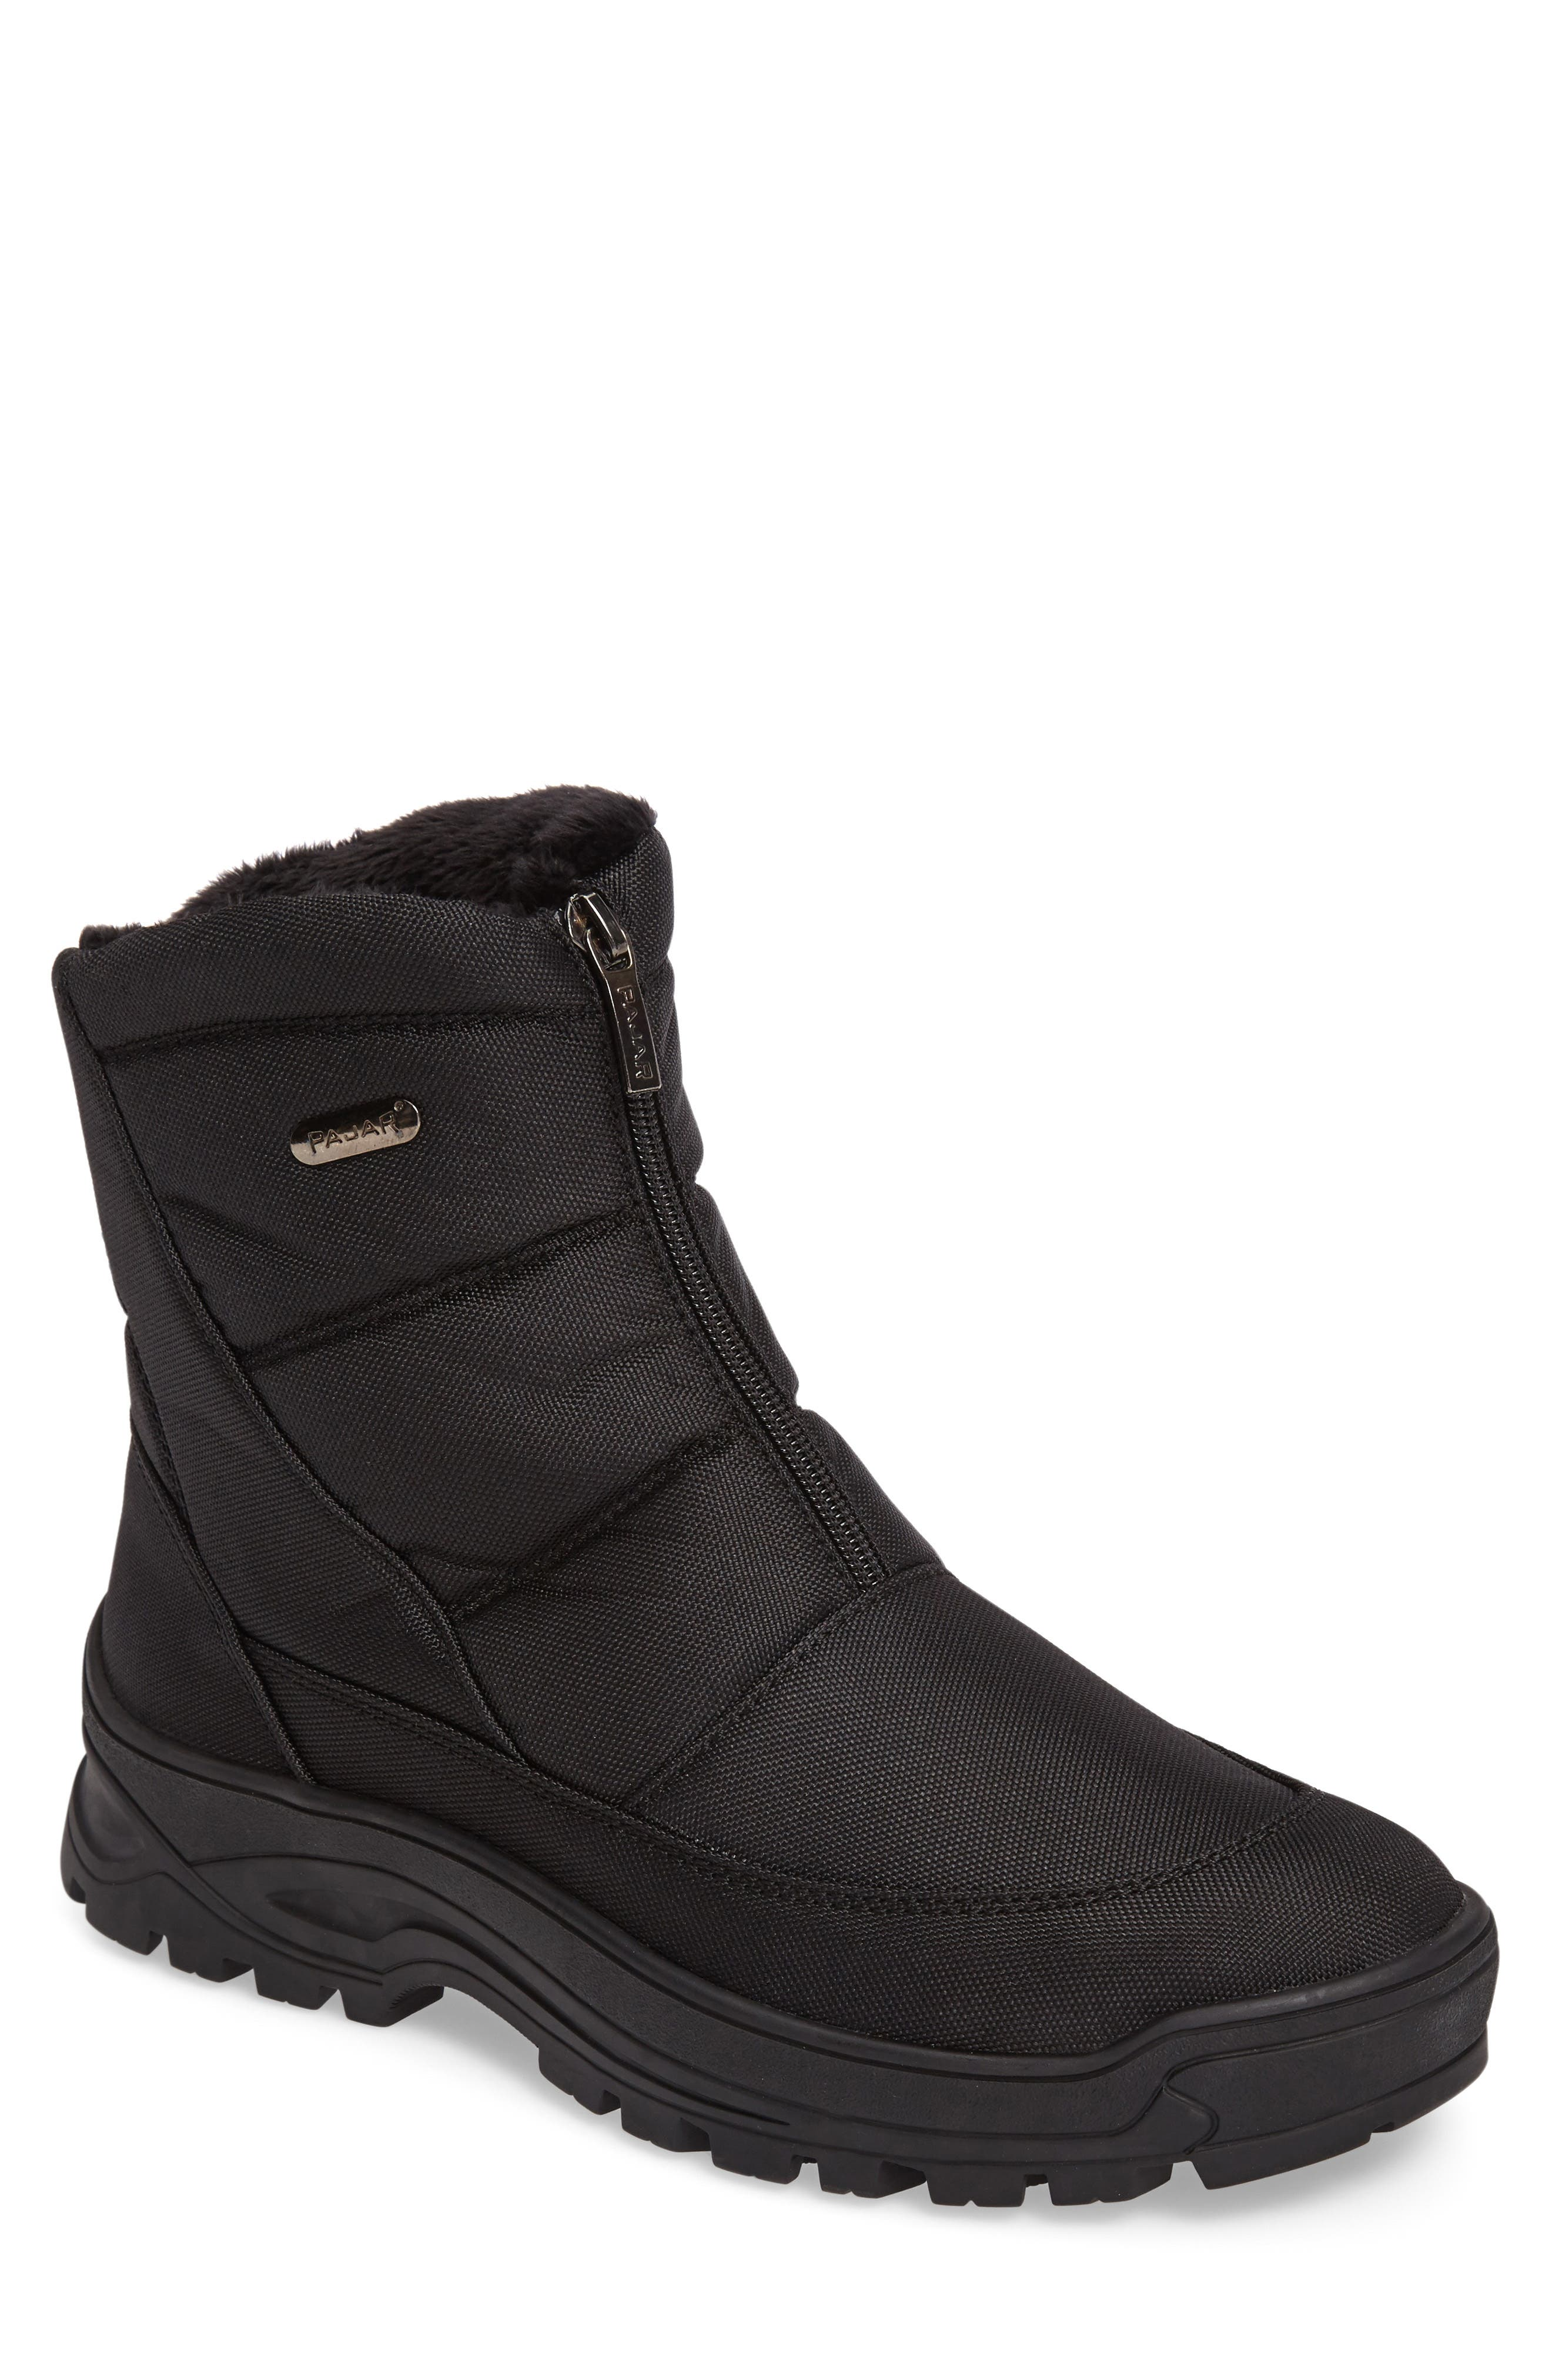 Icepack Boot with Faux Fur Lining,                             Main thumbnail 1, color,                             Black